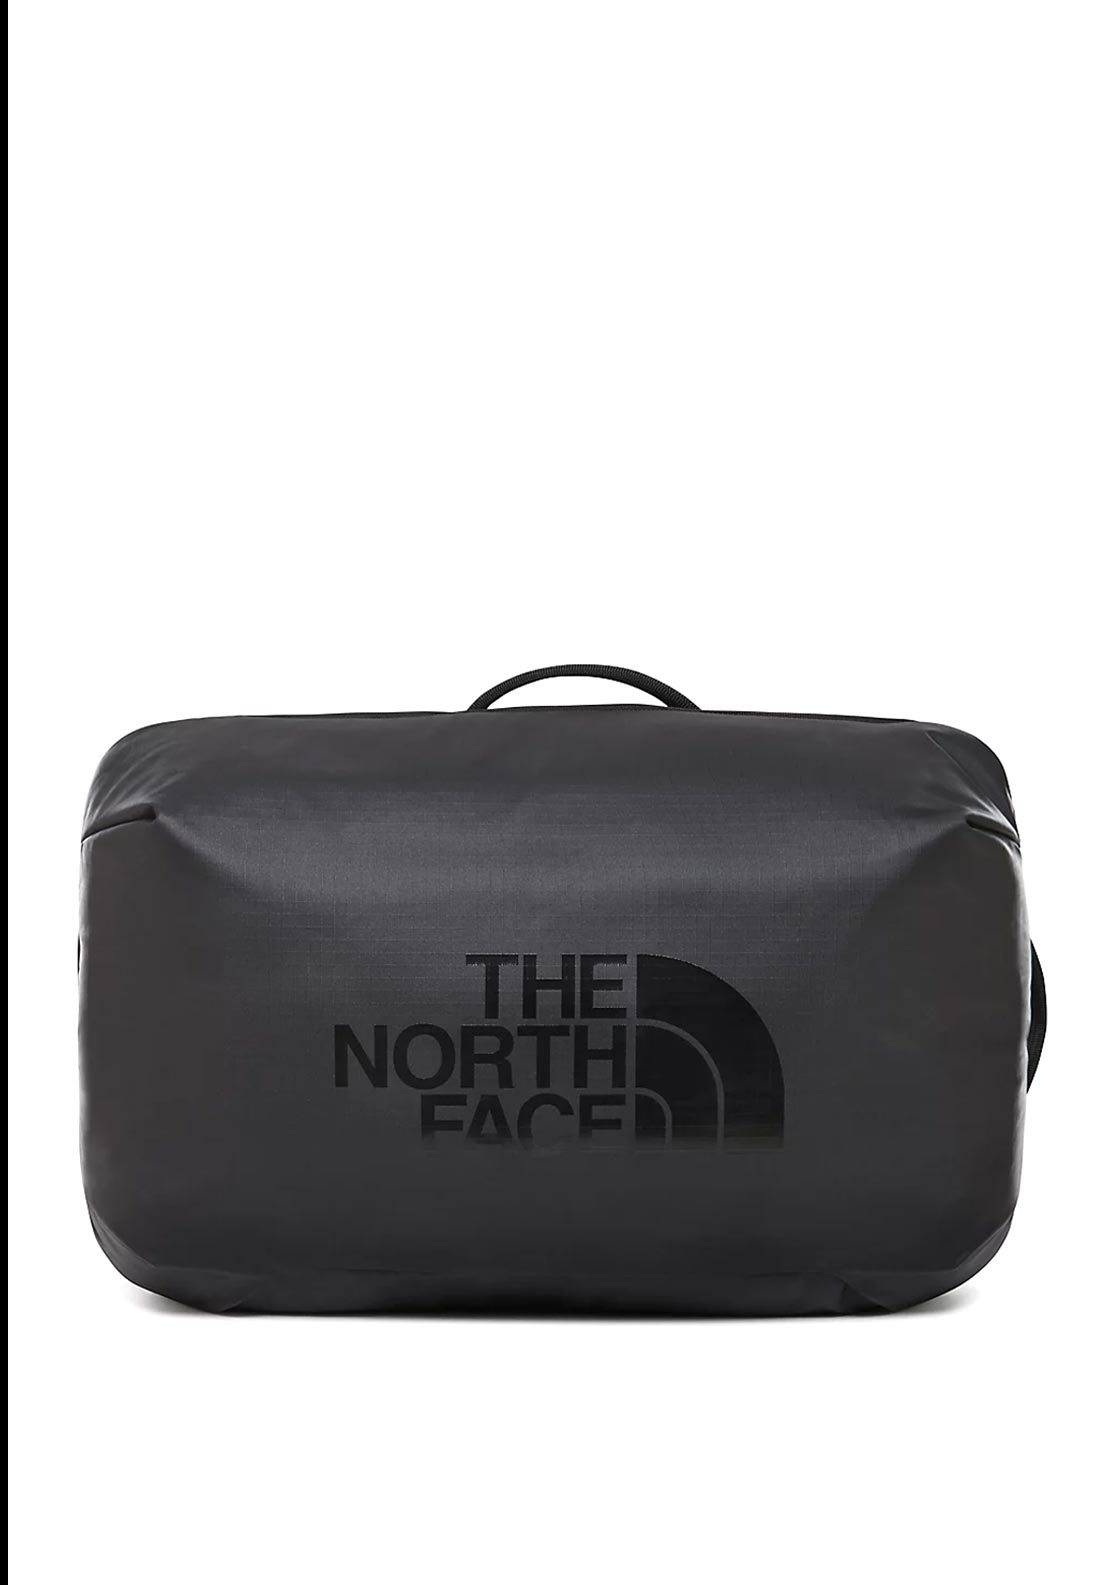 The North Face Stratoliner Duffel Bag, Black